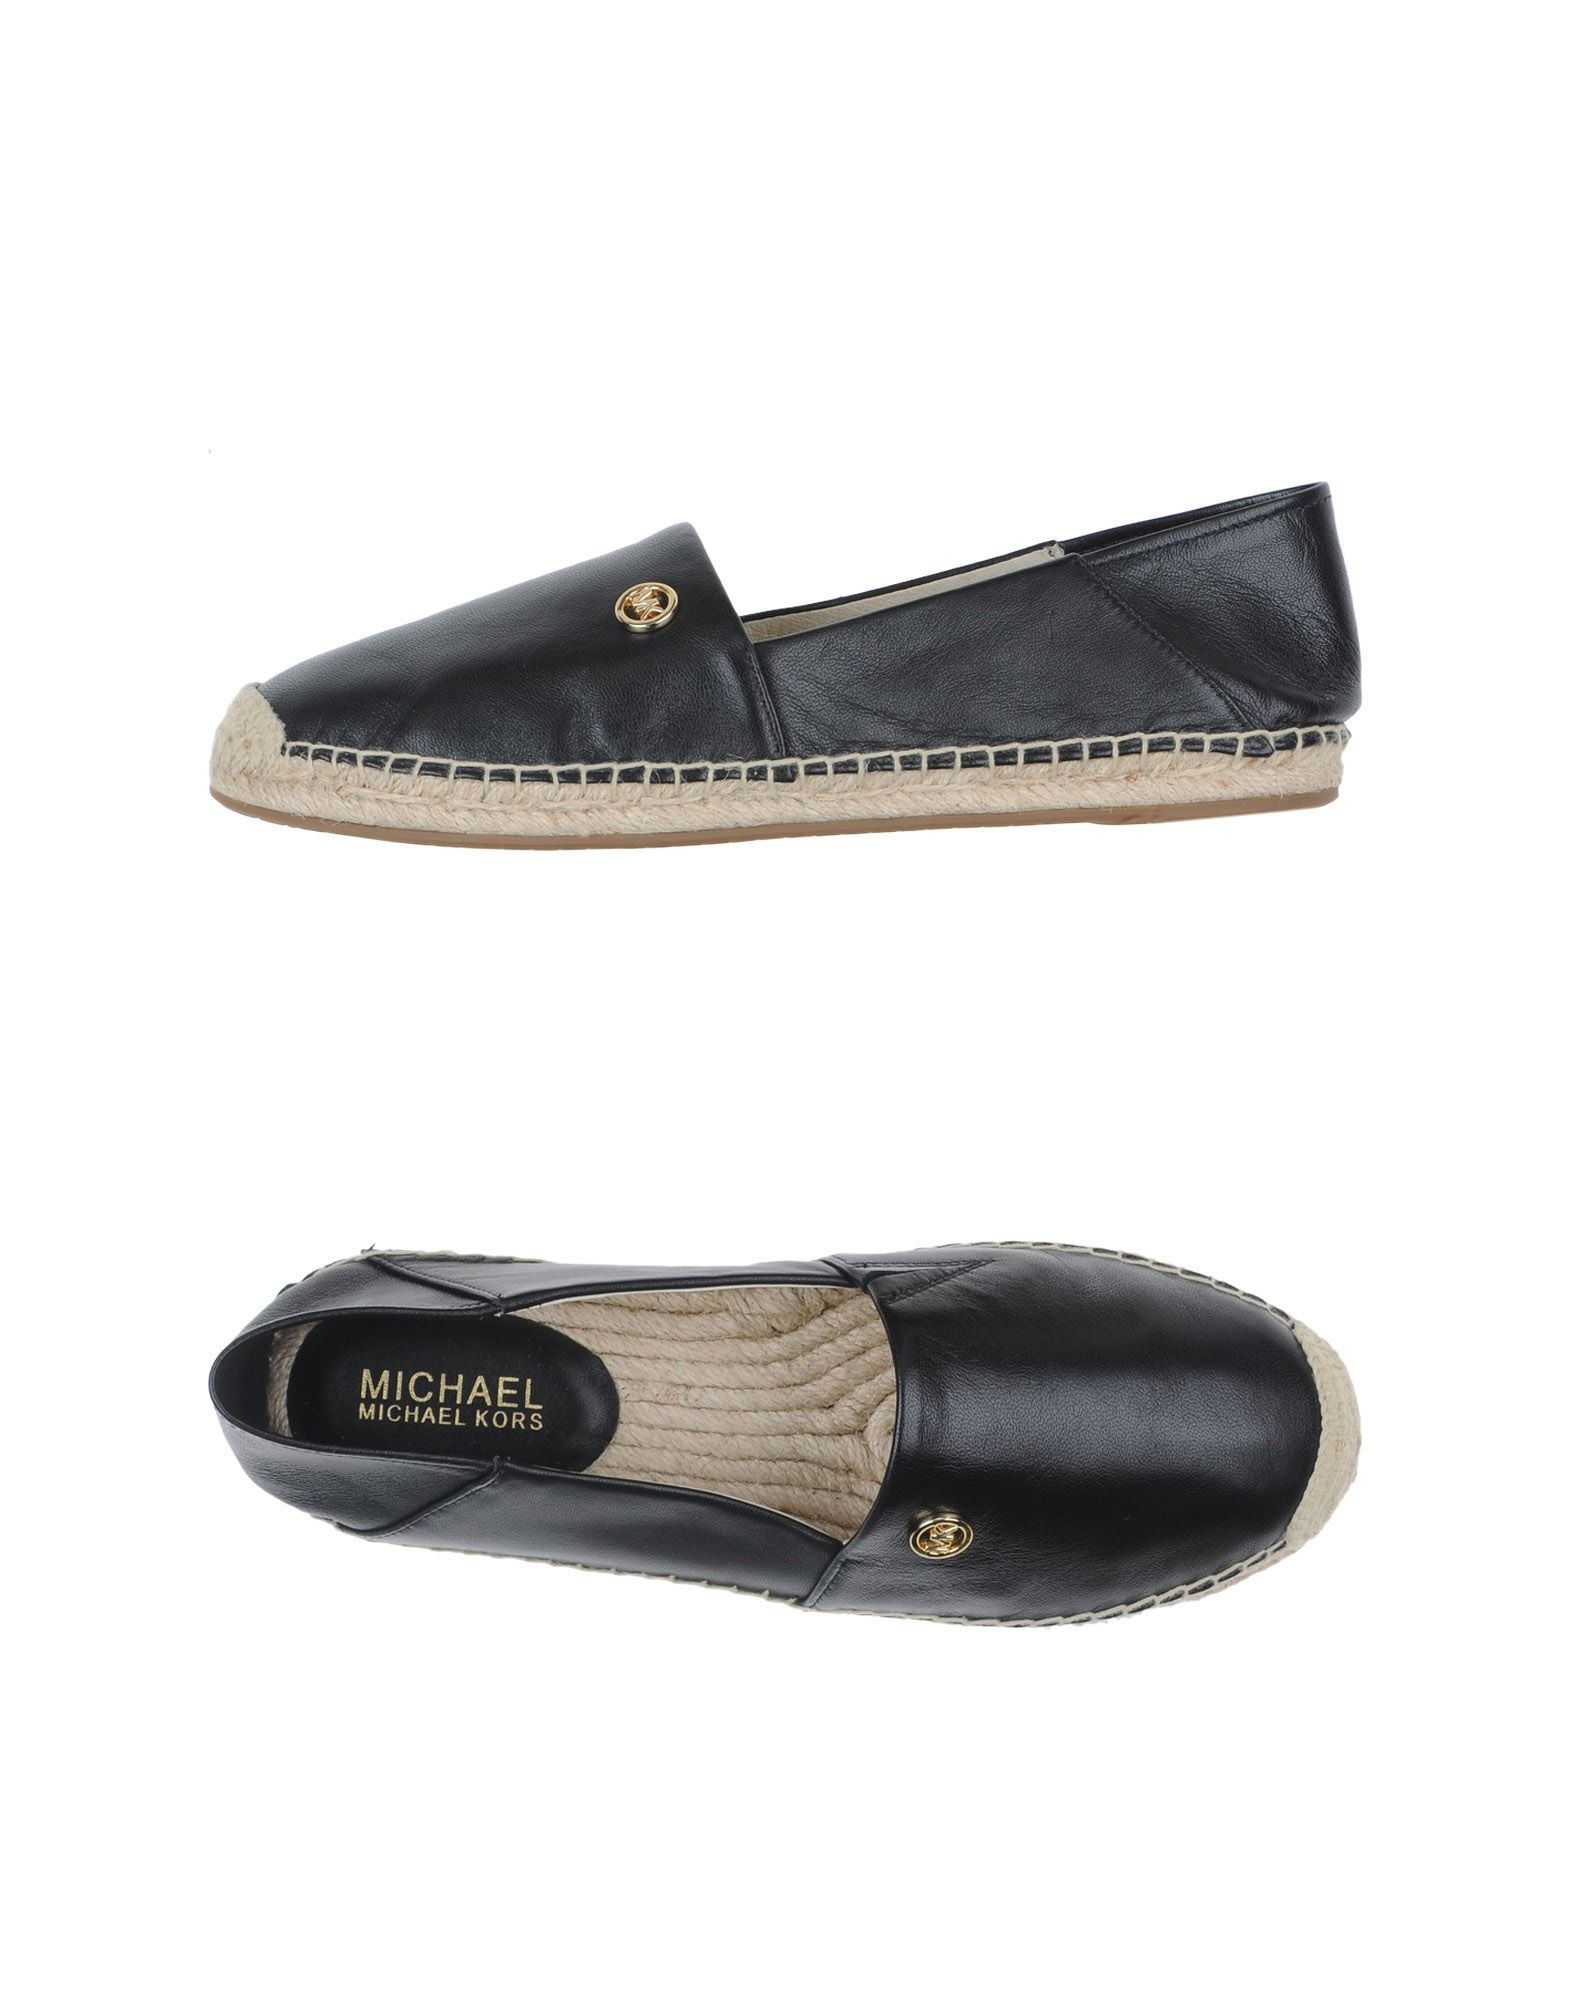 michael michael kors logo embossed leather espadrilles in black lyst. Black Bedroom Furniture Sets. Home Design Ideas